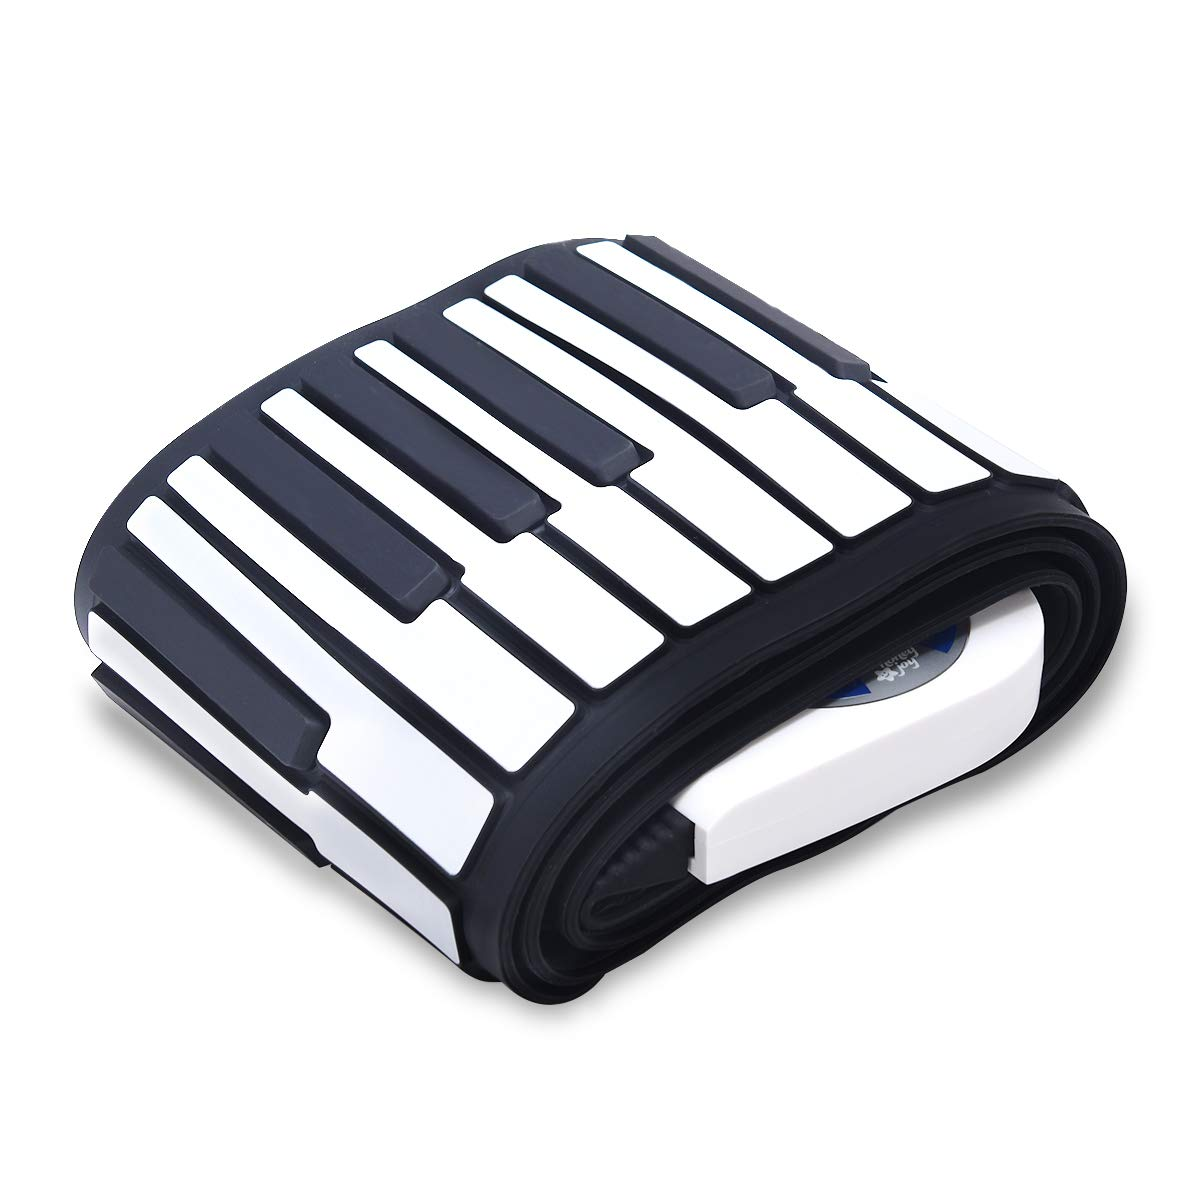 BABY JOY Roll Up Piano, Upgraded Electronic Piano Keyboard, Portable Piano w/Bluetooth, MP3 Headphone USB Input, MIDI OUT, 128 Rhythms, Record, Play, Volume Control (White, 88Keys) by BABY JOY (Image #6)